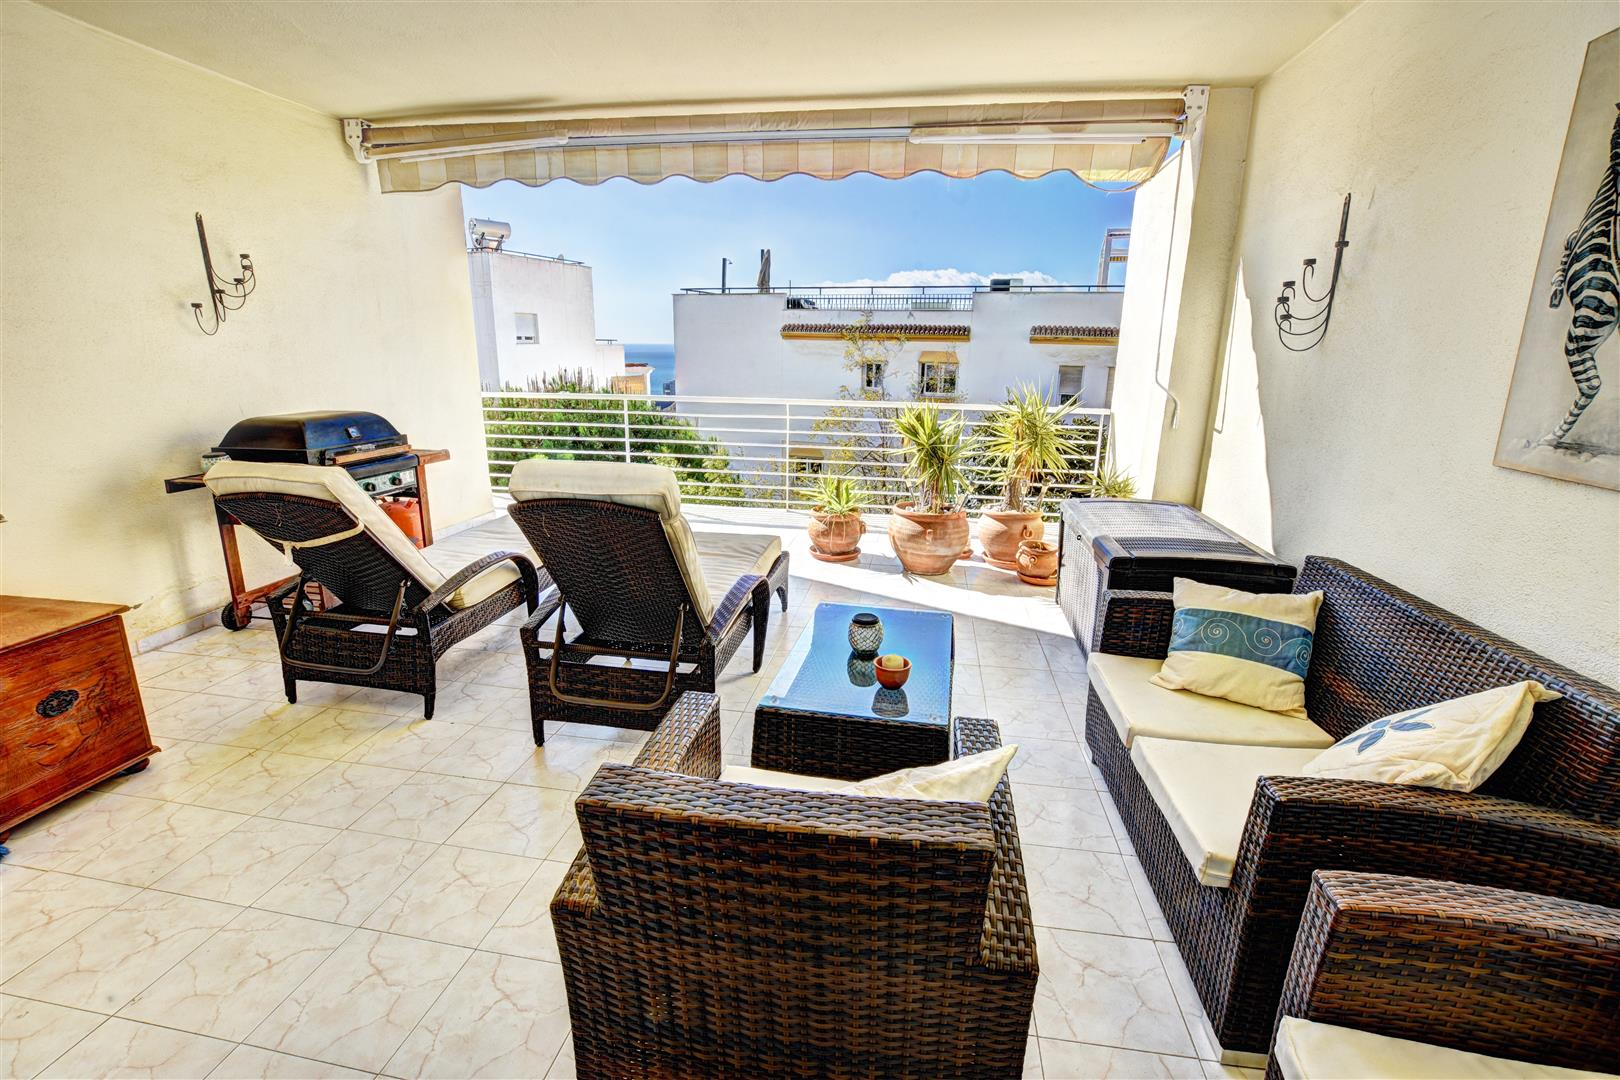 3 Bedroom Apartment for Sale in Hill Views Nueva Torrequebrada 026_27_28_29_30_3